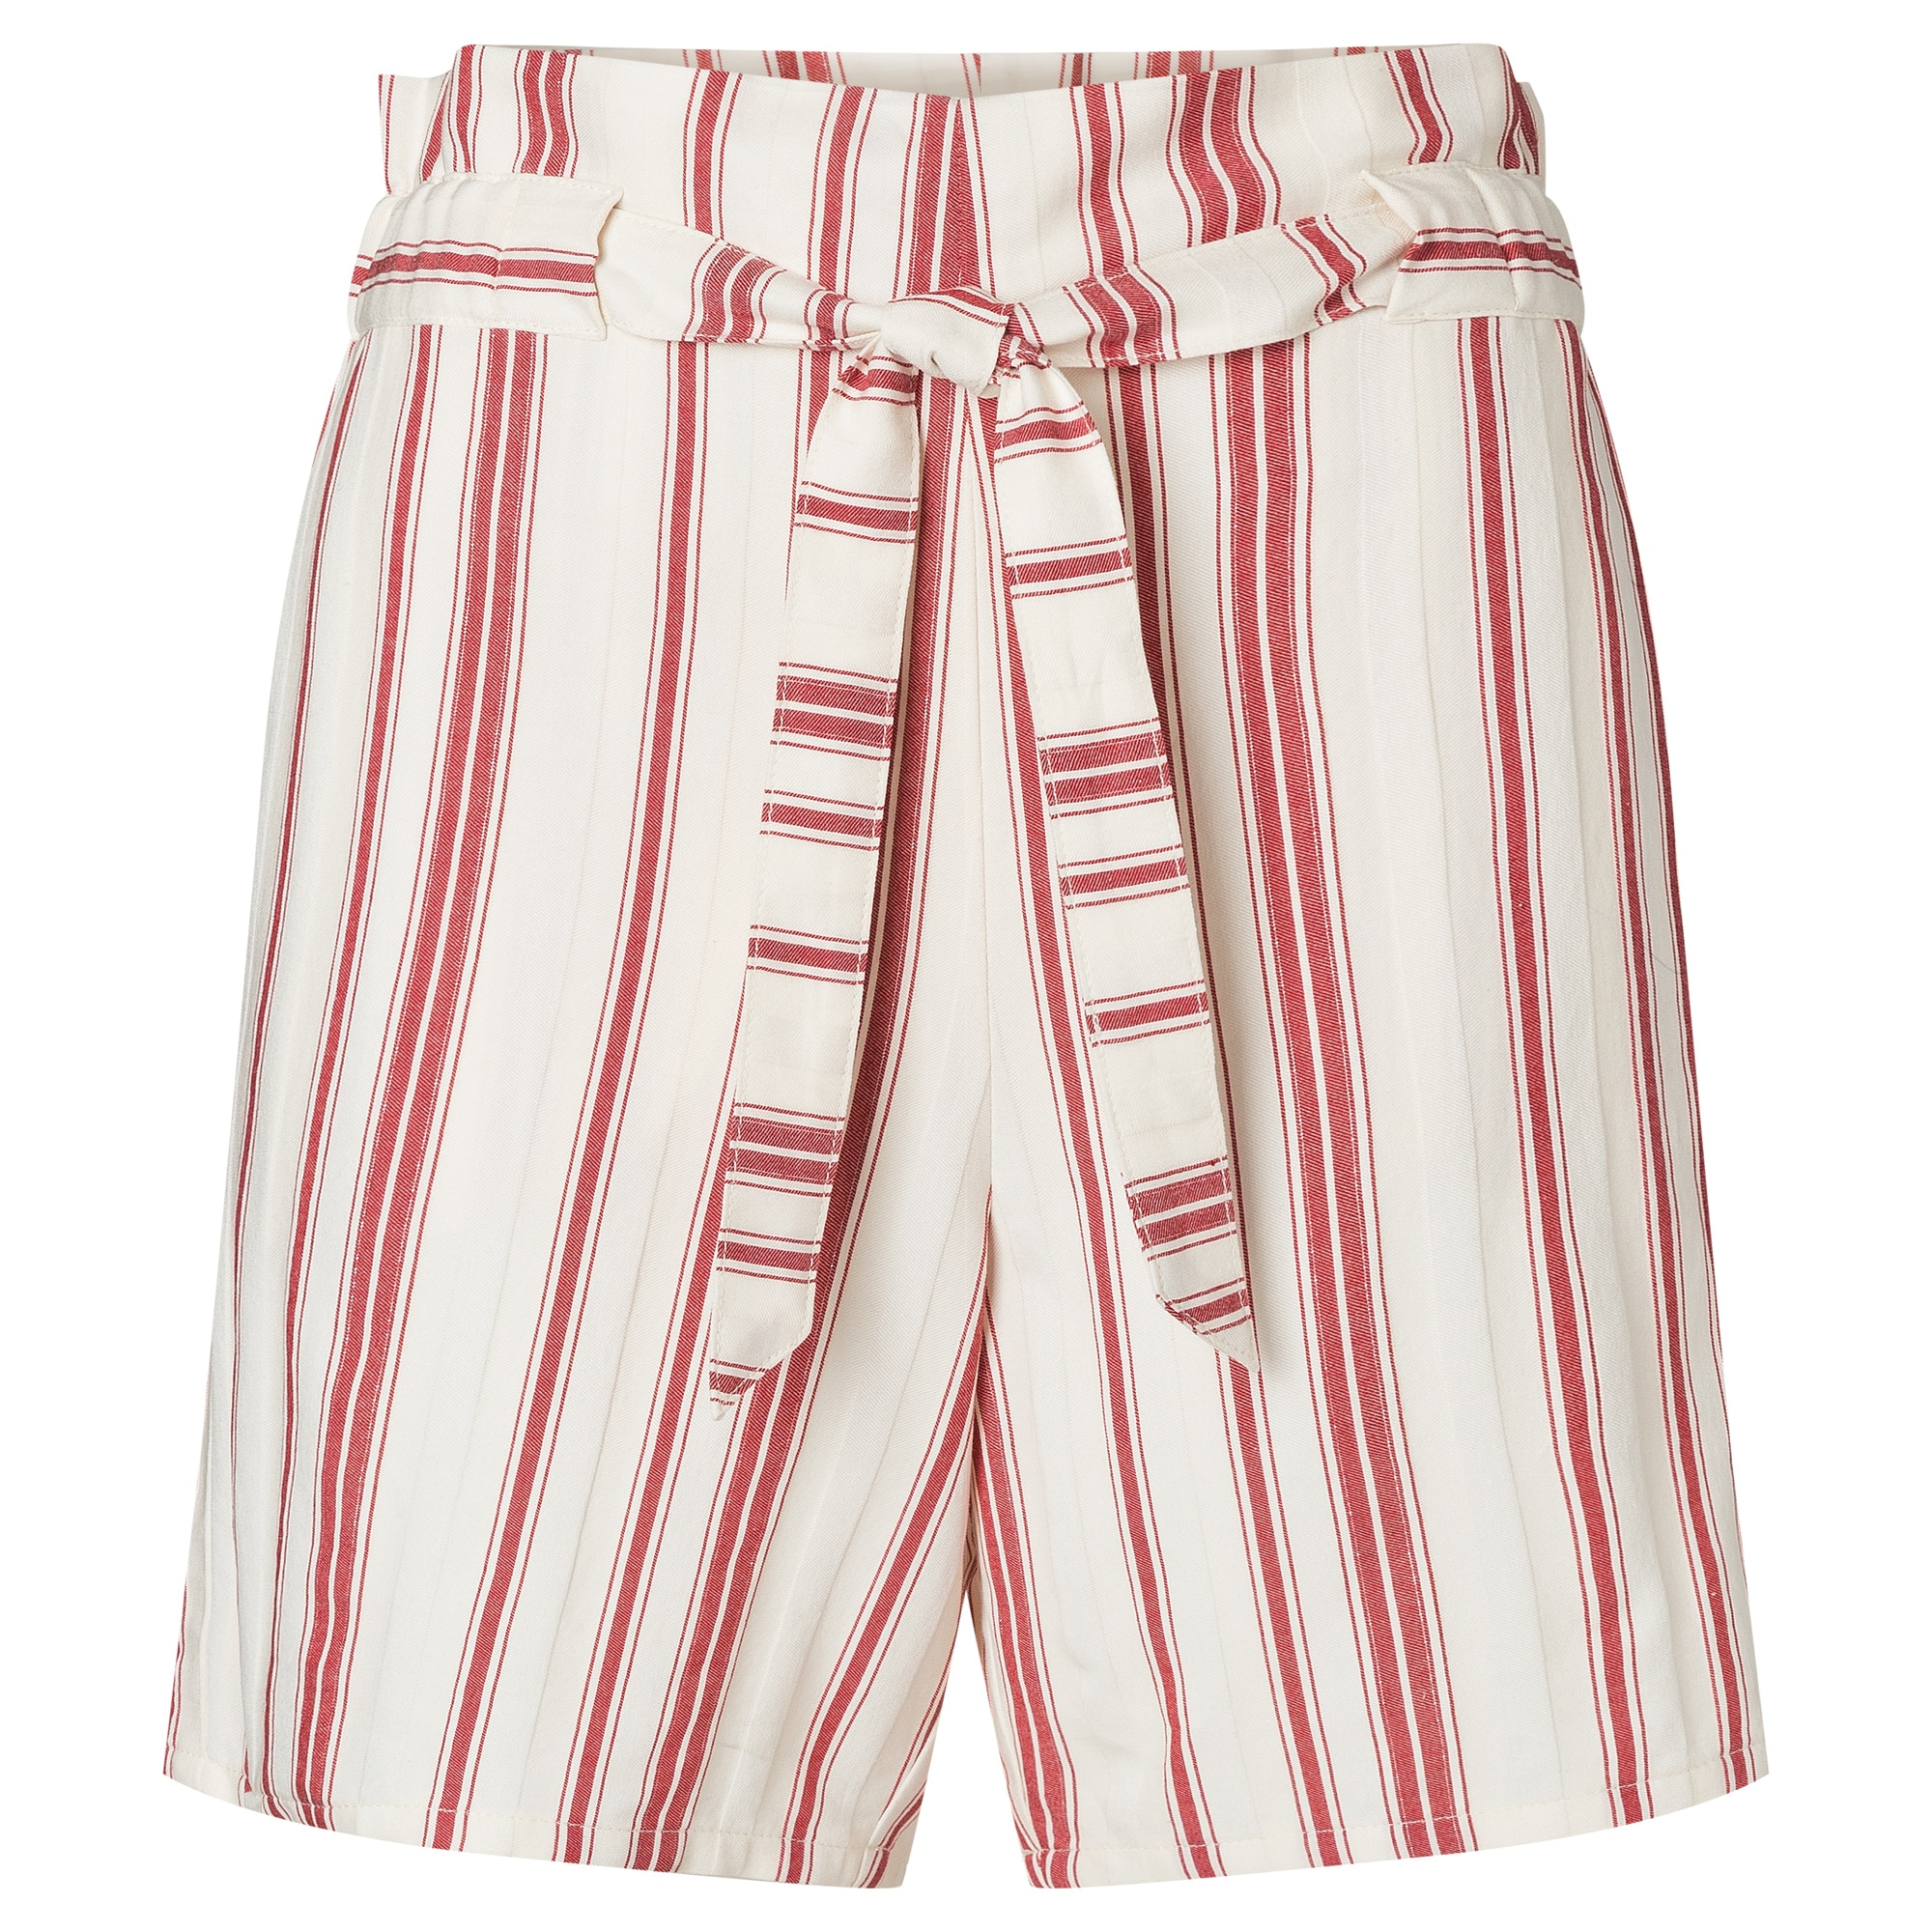 Shorts von #one more story